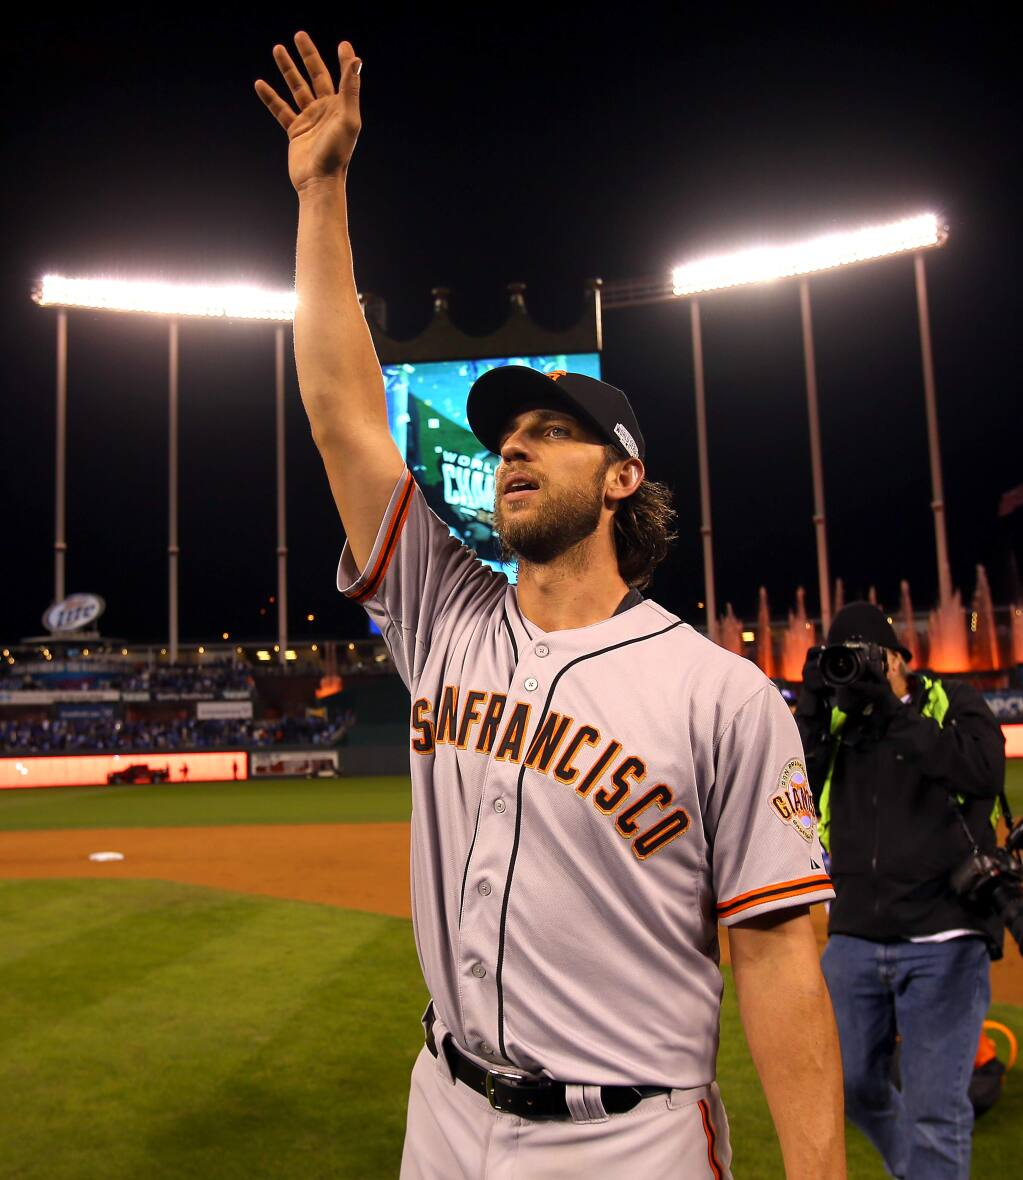 San Francisco Giants pitcher Madison Bumgarner waves to Giants fans after beating the Kansas City Royals in Game 7 of the World Series in Kansas City on Wednesday, Oct. 29, 2014. (Christopher Chung / The Press Democrat)